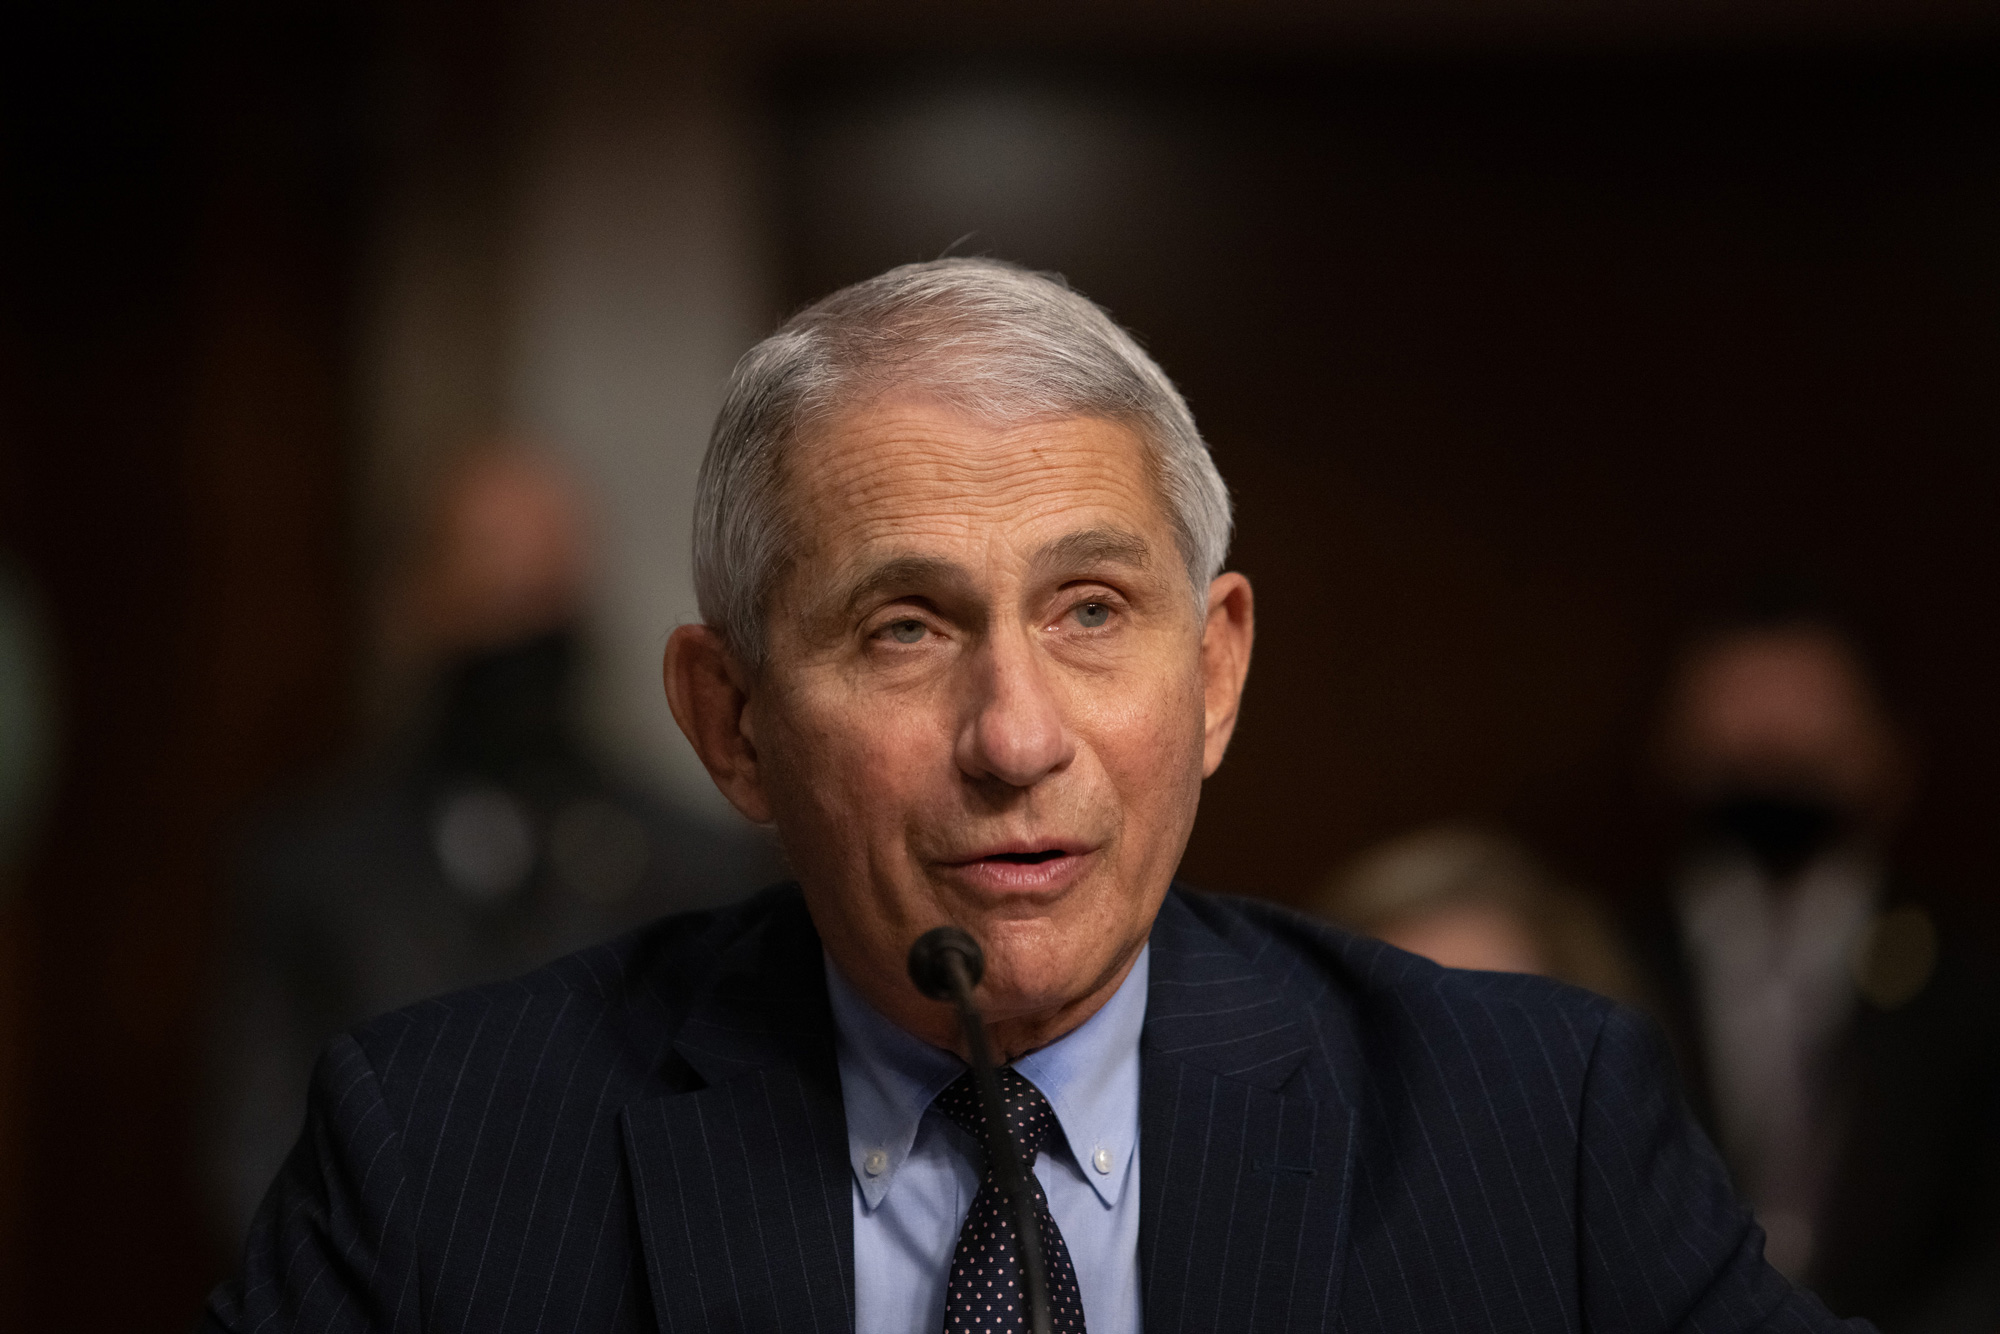 Dr. Anthony Fauci testifies during a hearing in Washington, DC, on September 23.